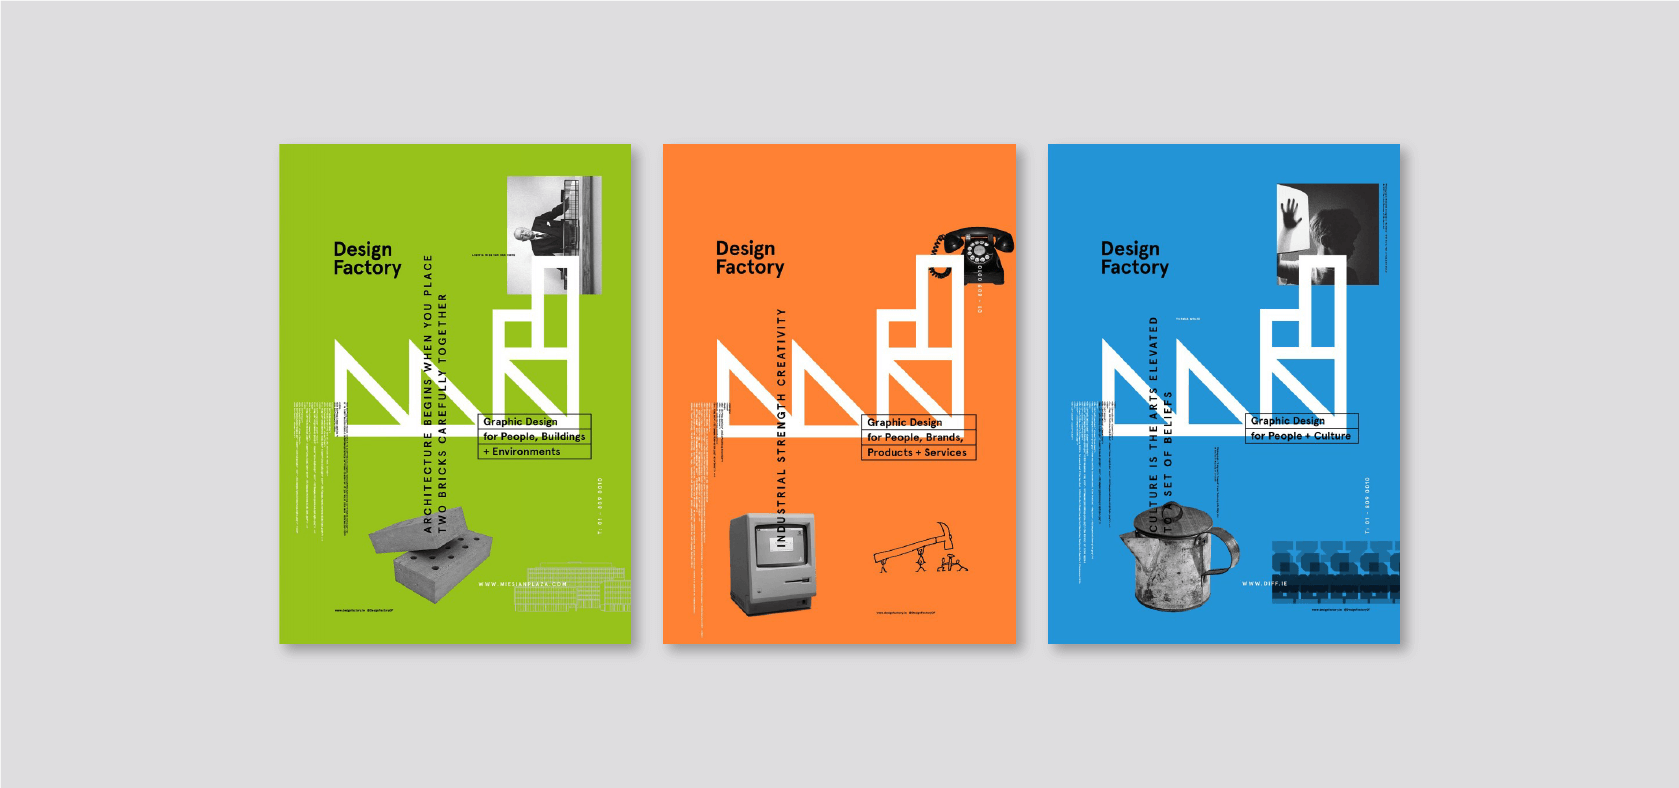 A poster series designed to highlight the Design Factory branding